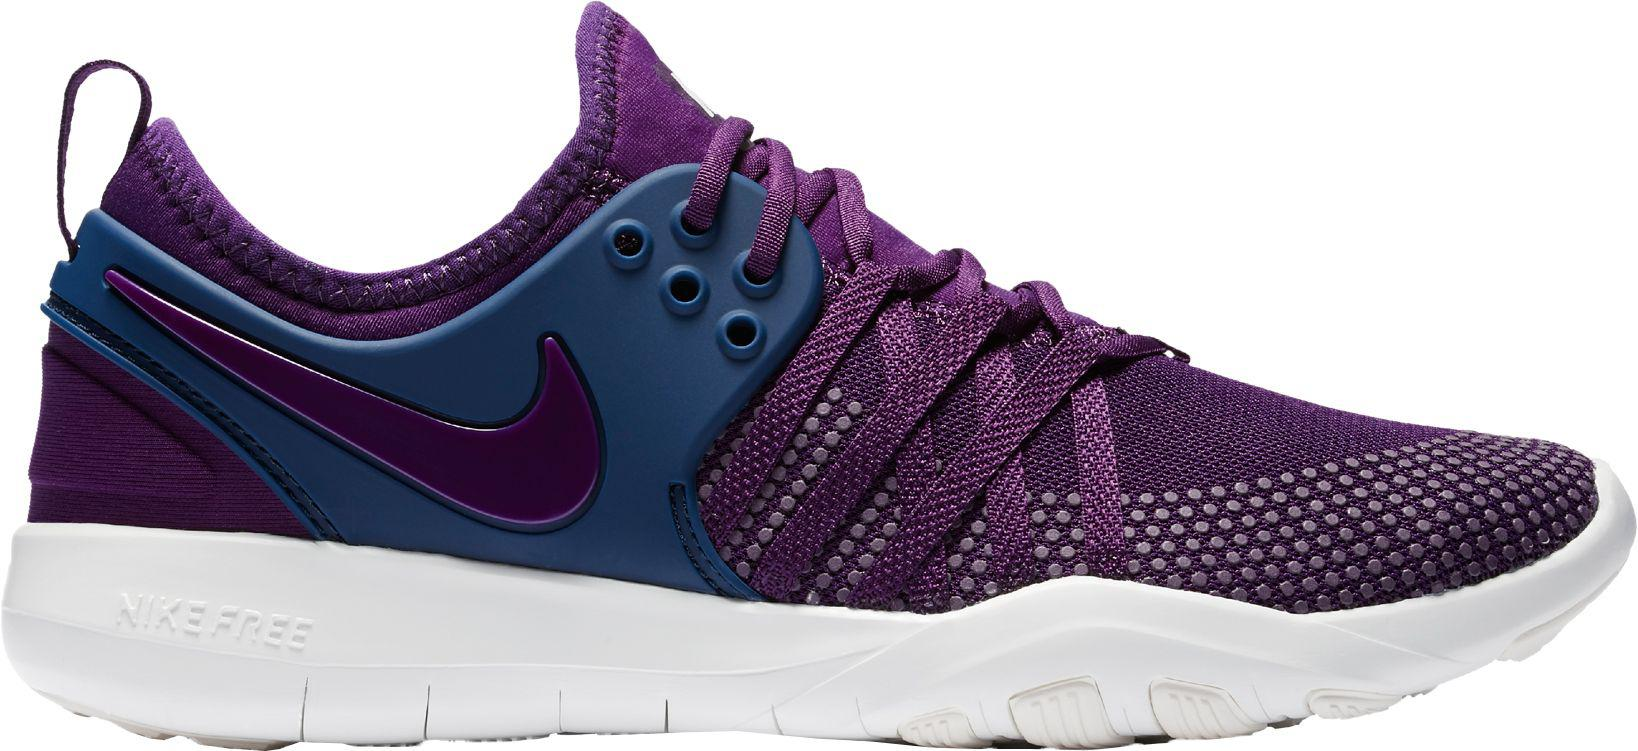 4282e3e34e5b nike-Purple-Free-Tr-7-Bionic-Training-Shoes.jpeg